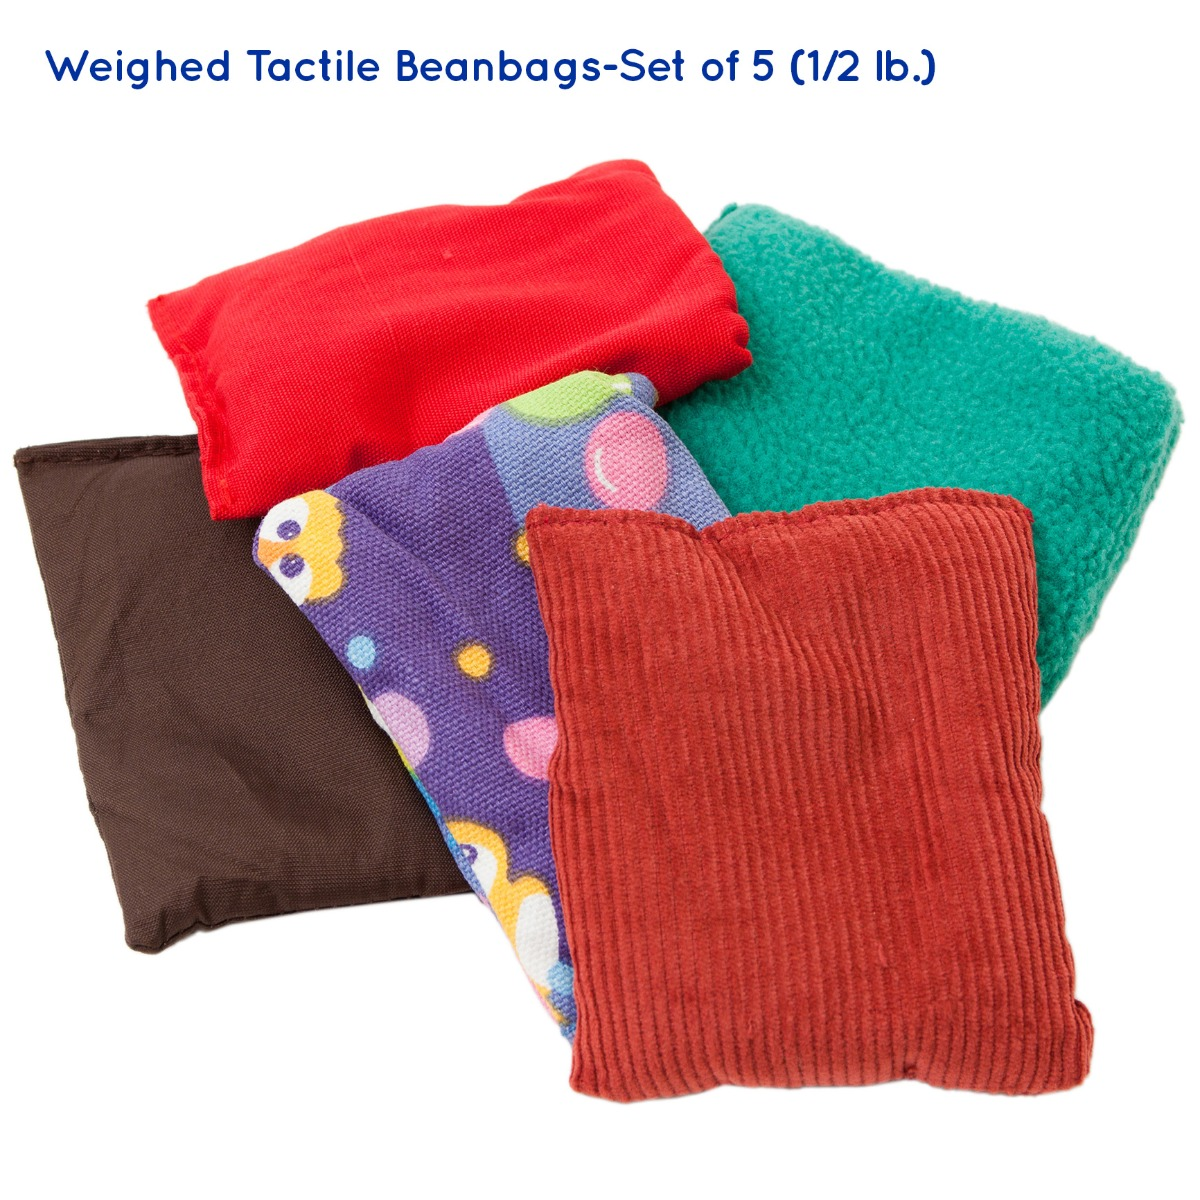 Wearing Times for Weighted Vests - Weighted Tactile Beanbags